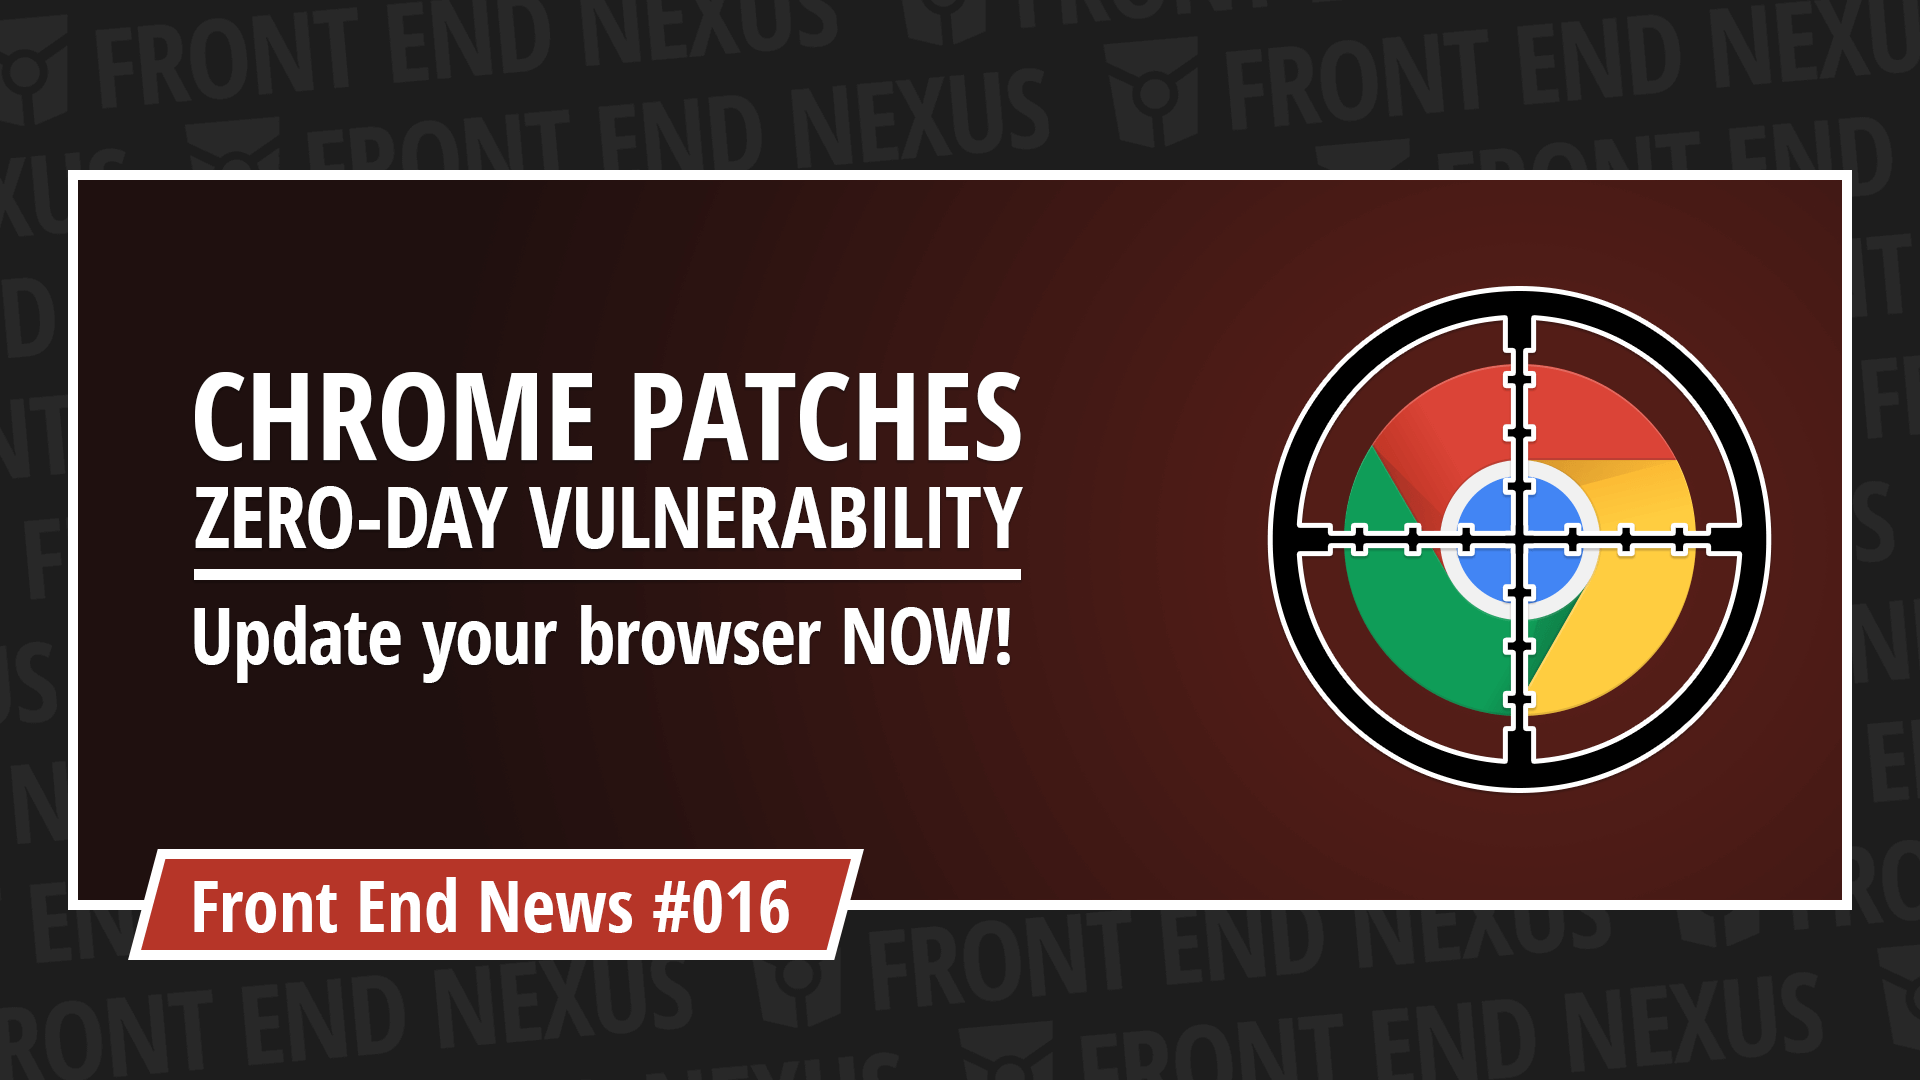 Chrome Zero-Day Vulnerability, the end of the Flash era, and what WebRTC means for you | Front End News #016